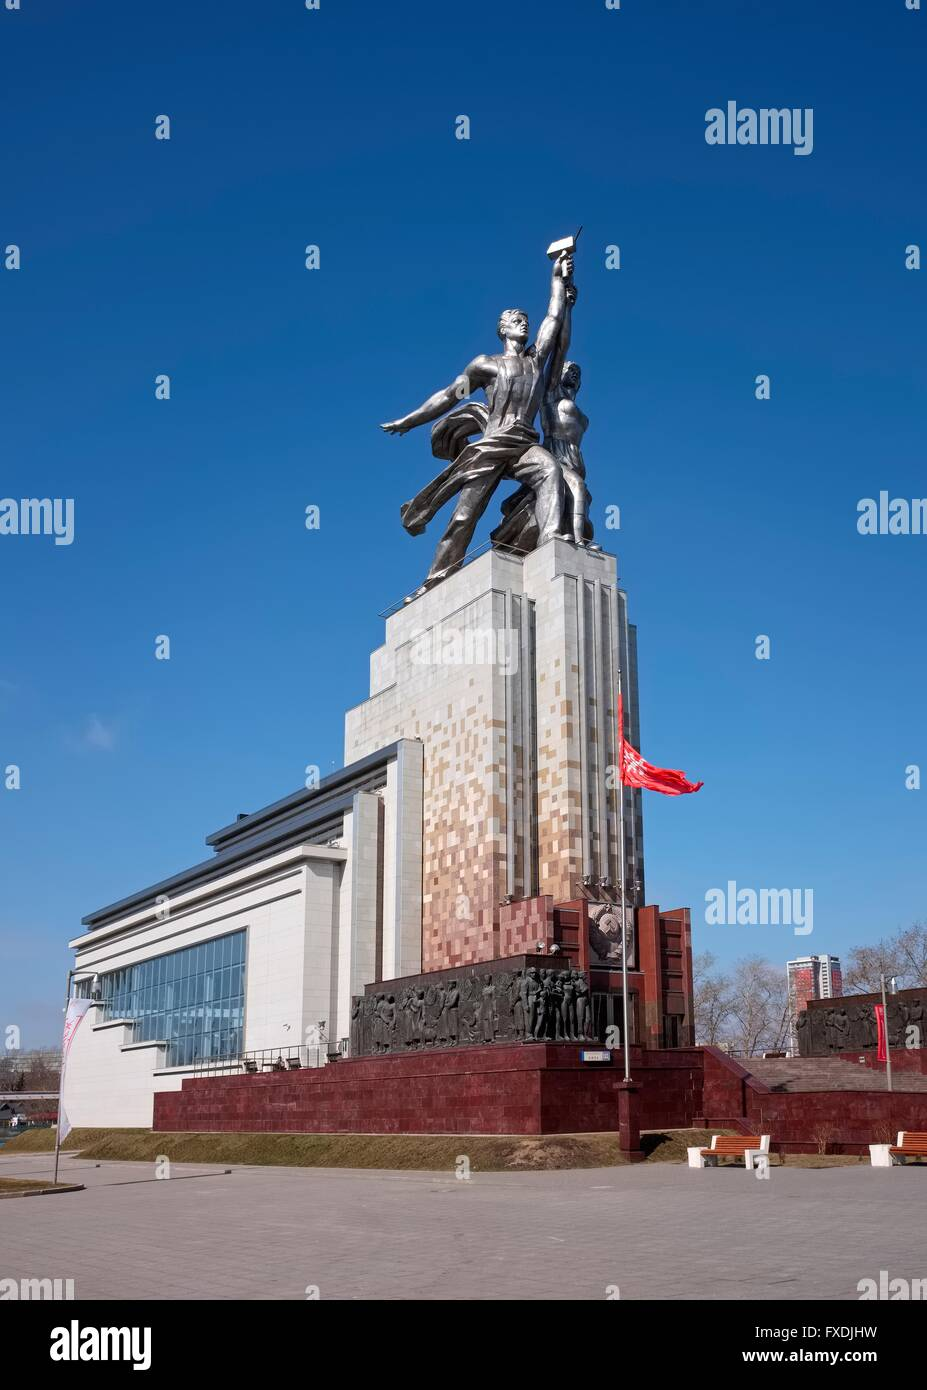 Monument Rabochiy i Kolkhoznitsa (Worker and Kolkhoz Woman) architect Vera Mukhina, landmark, symbol of the Soviet - Stock Image